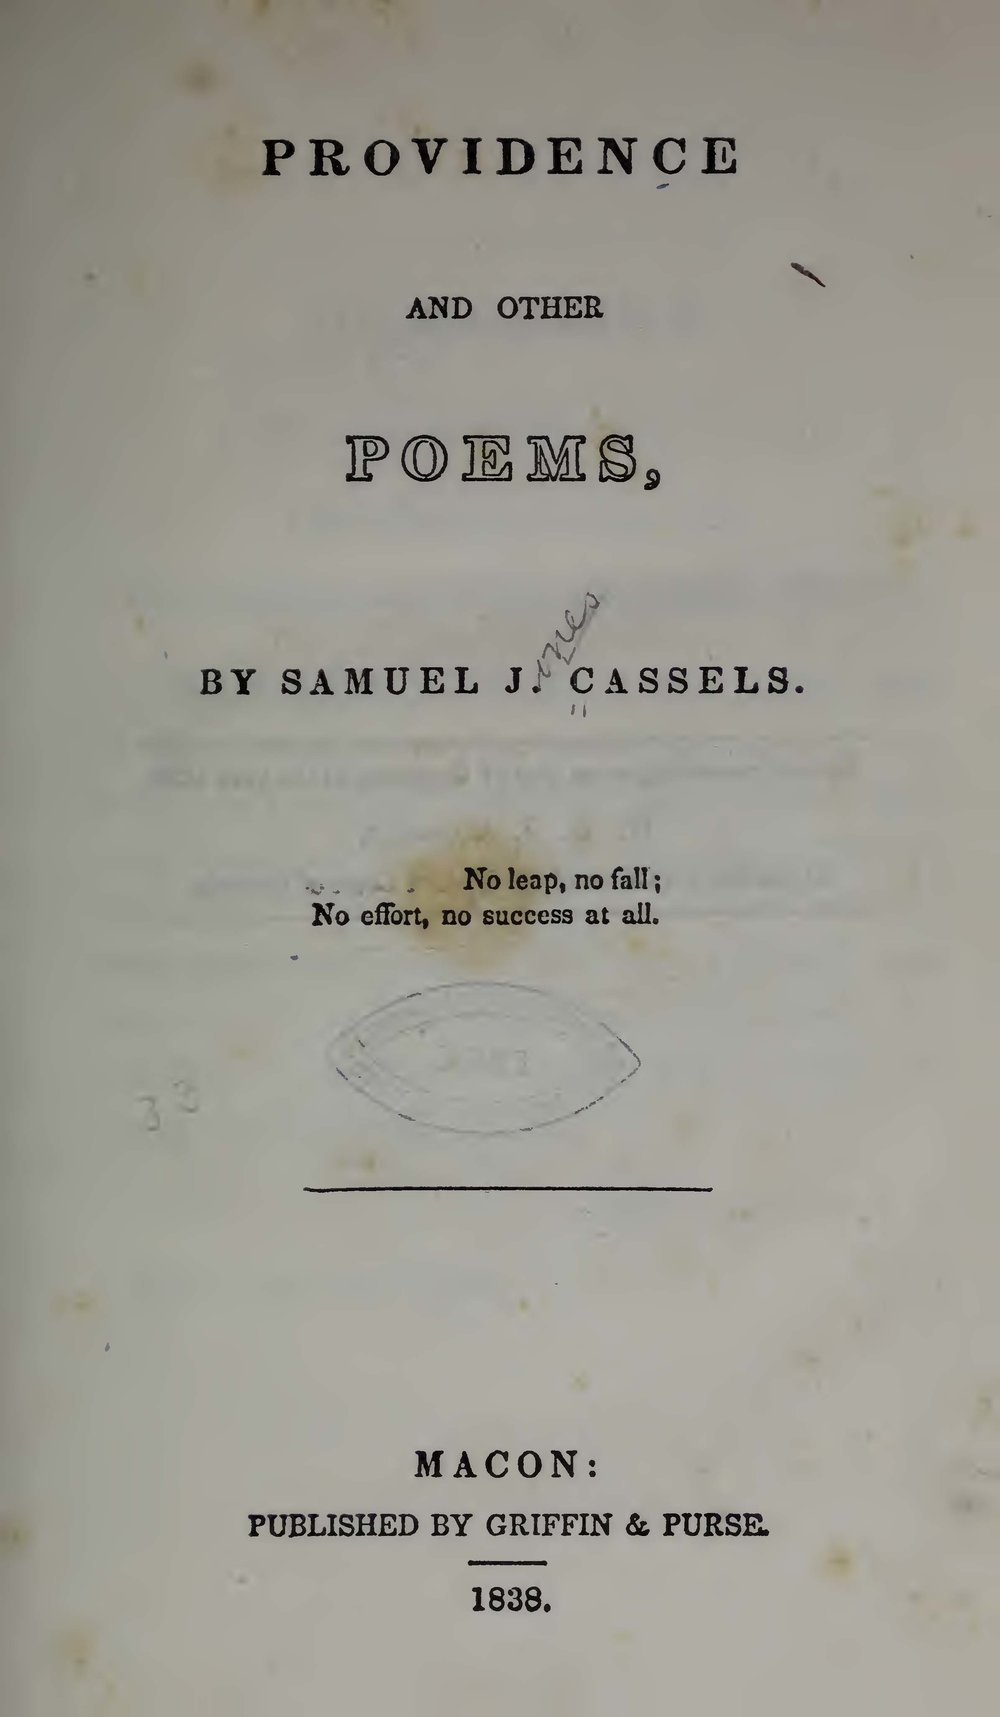 Cassells, Samuel J., Providence and Other Poems Title Page.jpg